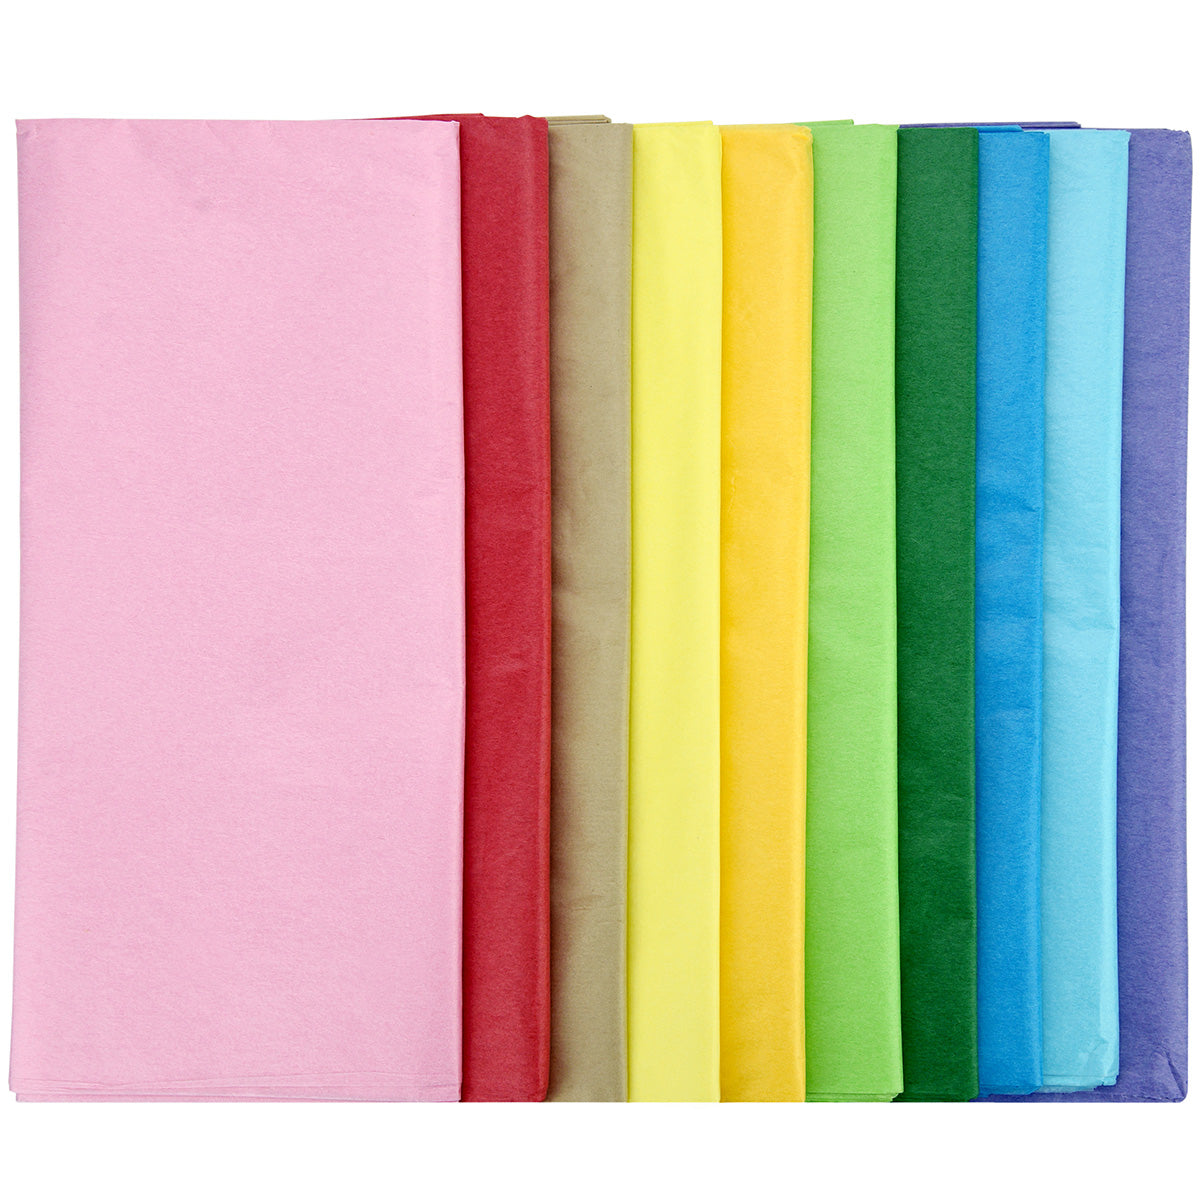 100 Sheets Wrapping Tissue Paper (Mixed 10 Colors)